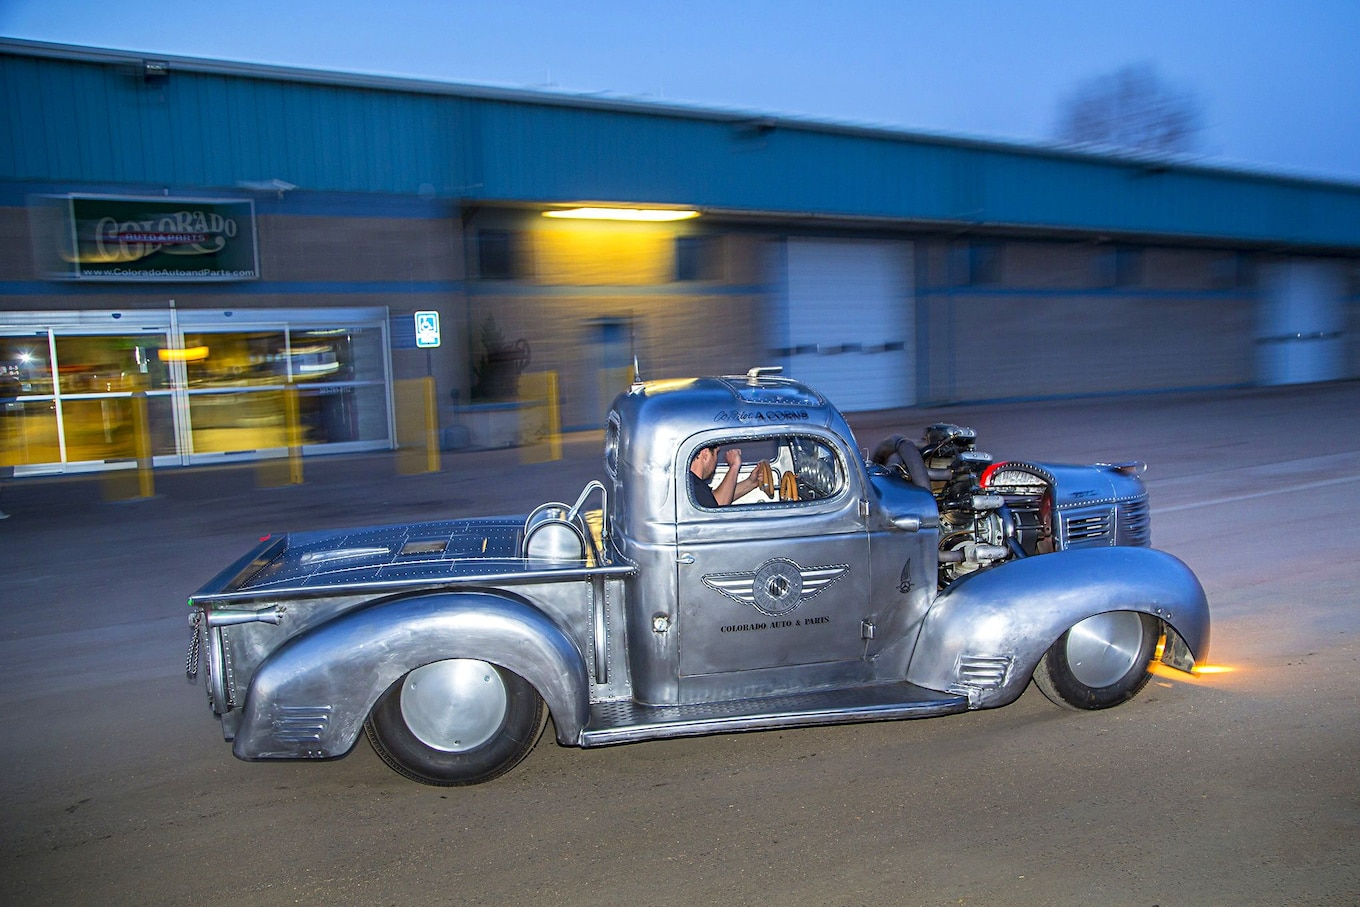 This Airplane Engine 1939 Plymouth Pickup is Radically Radial